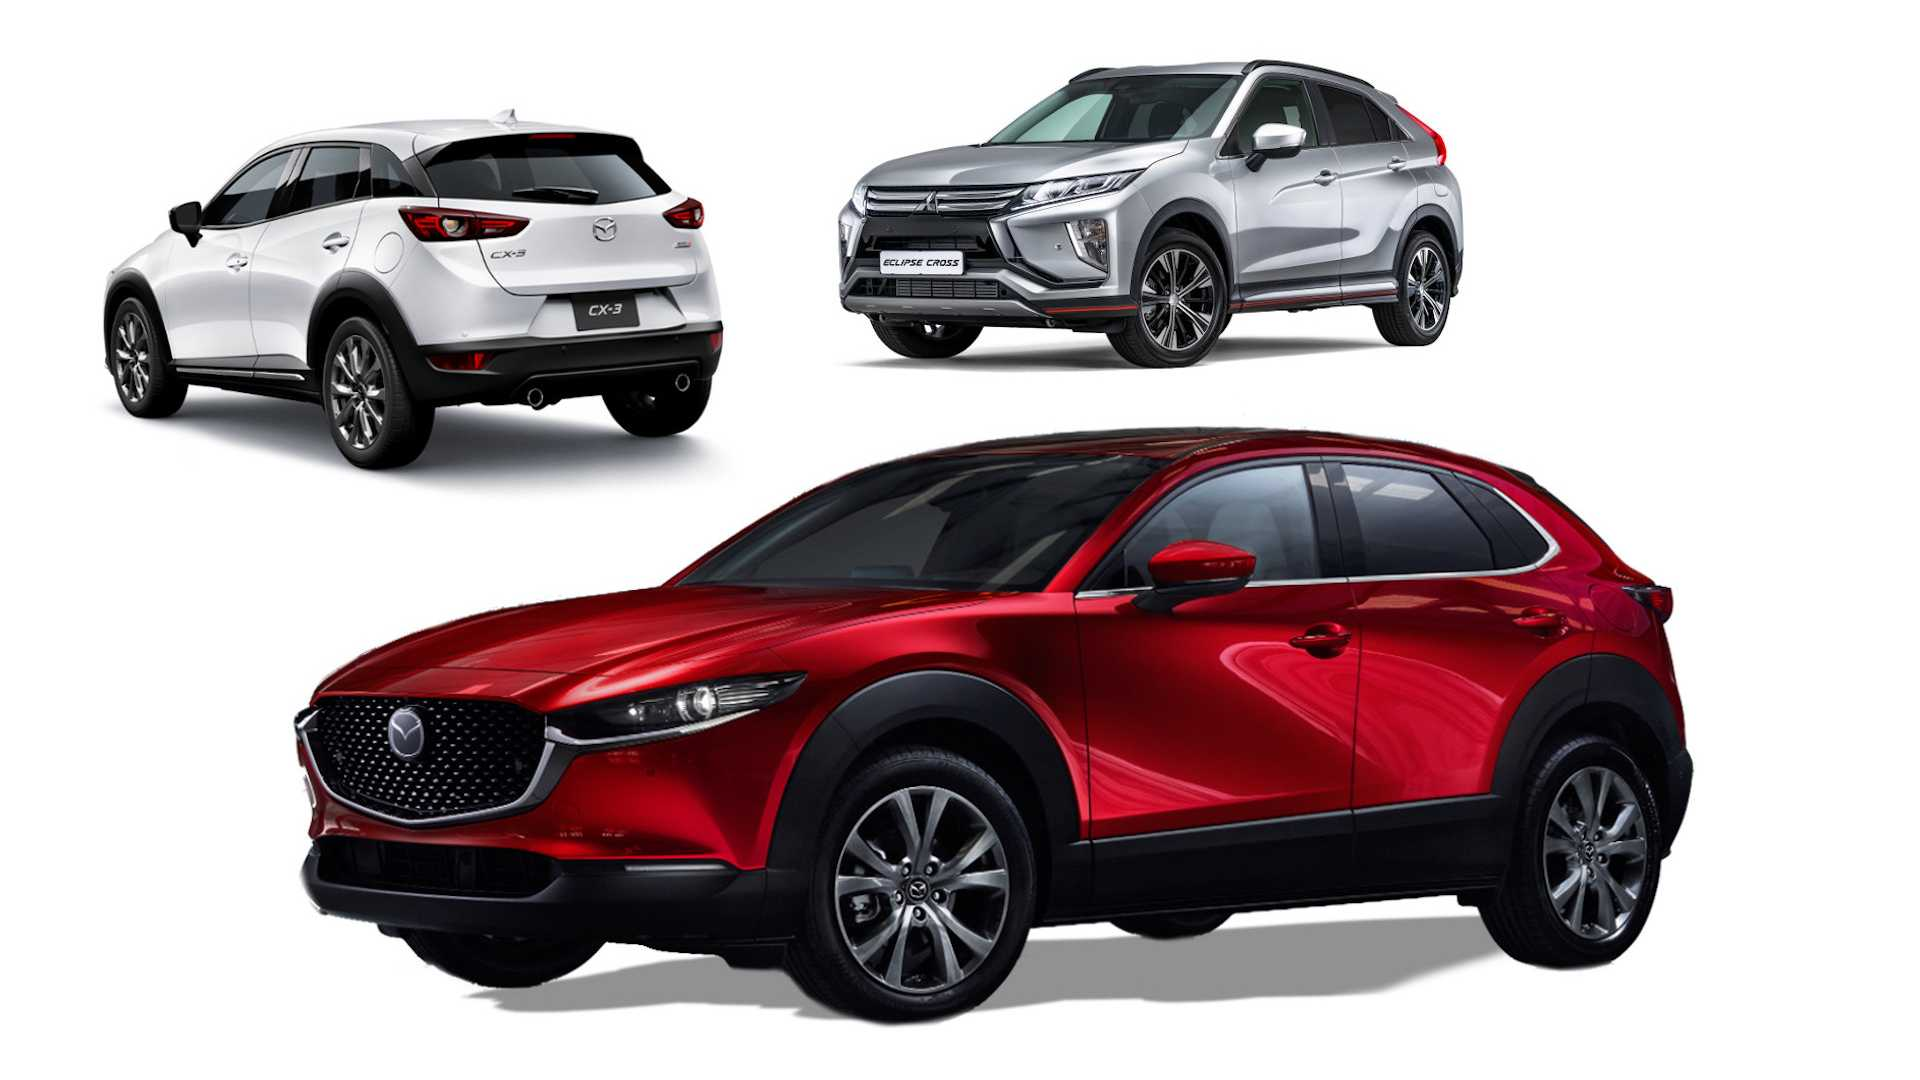 Mazda Cx 3 Release Date >> 2020 Mazda Cx 30 Vs The Competition What S The Difference